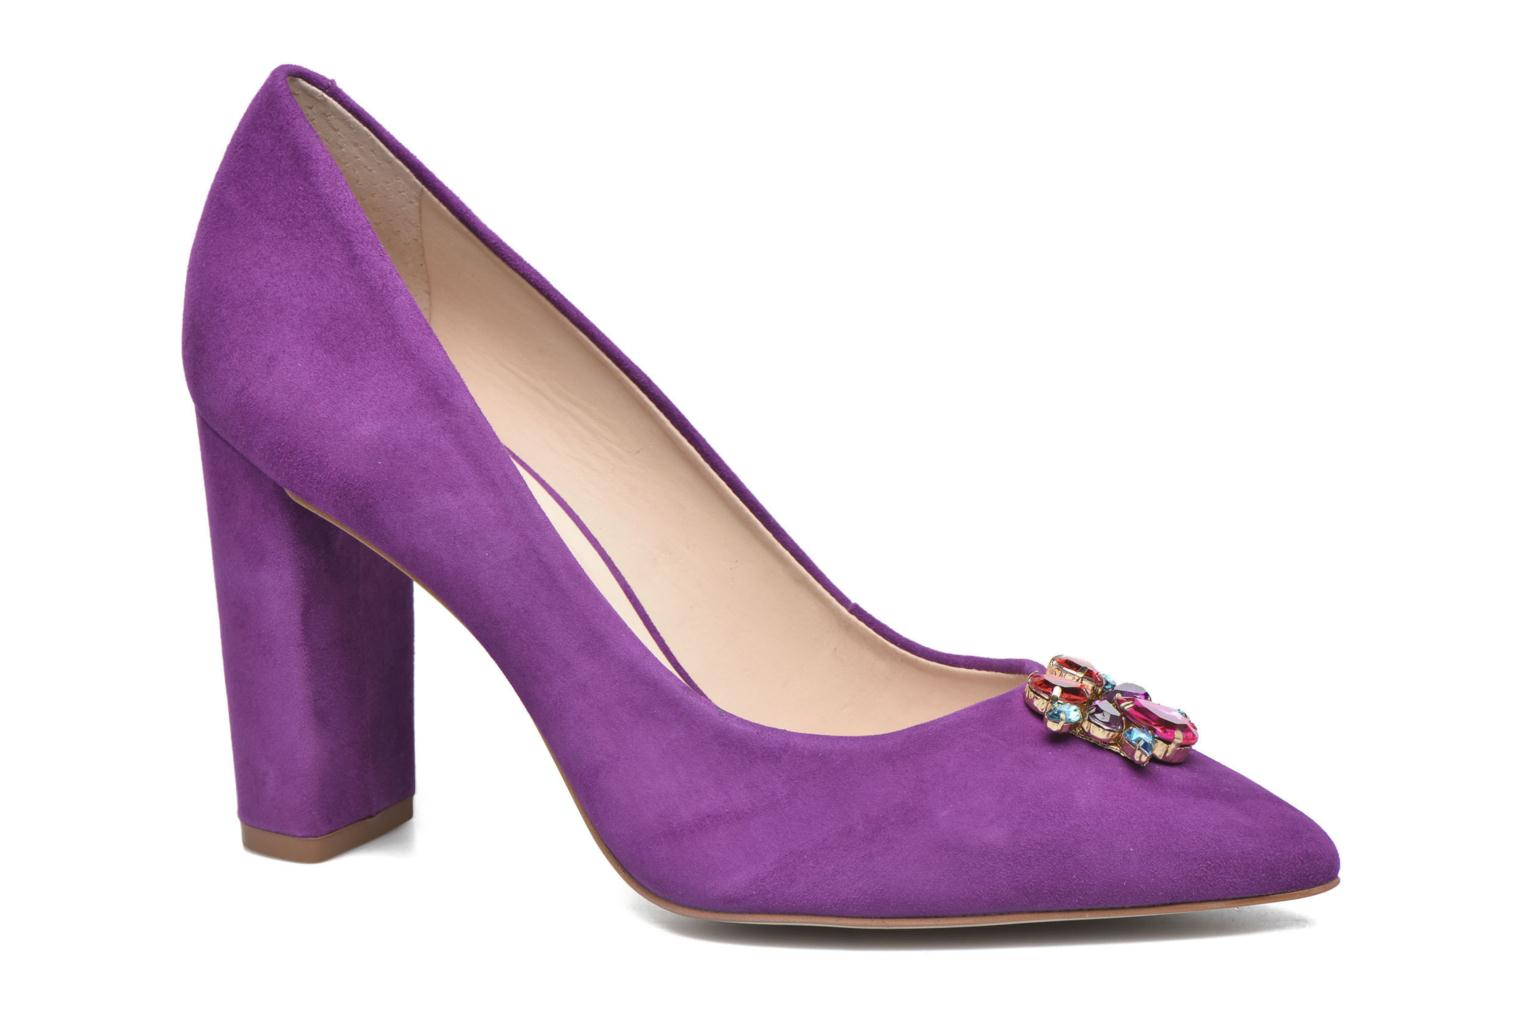 Marques Chaussure femme Mellow Yellow femme Ciby Violet Fuxia